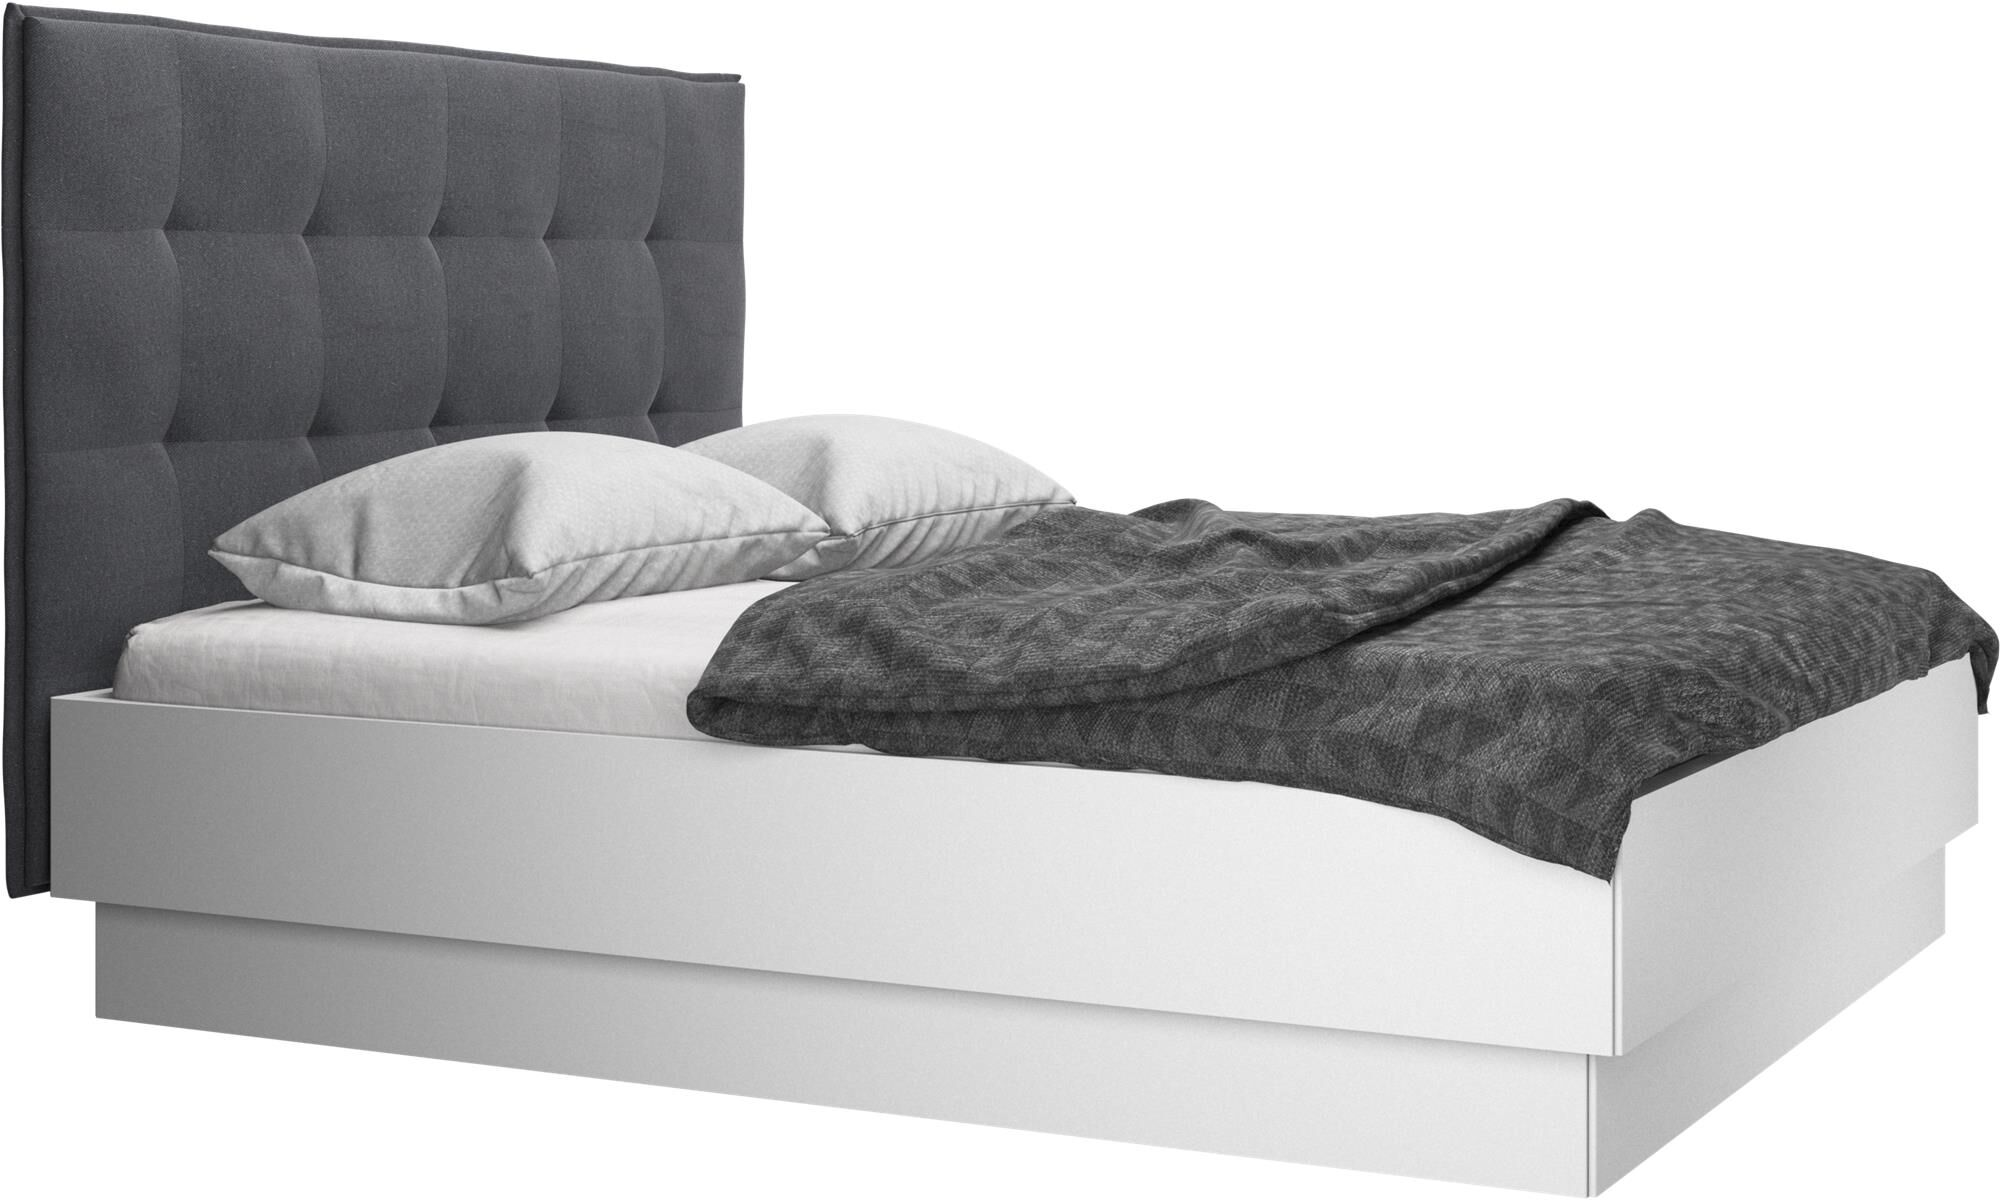 beds lugano storage bed with liftup frame and slats excl mattress